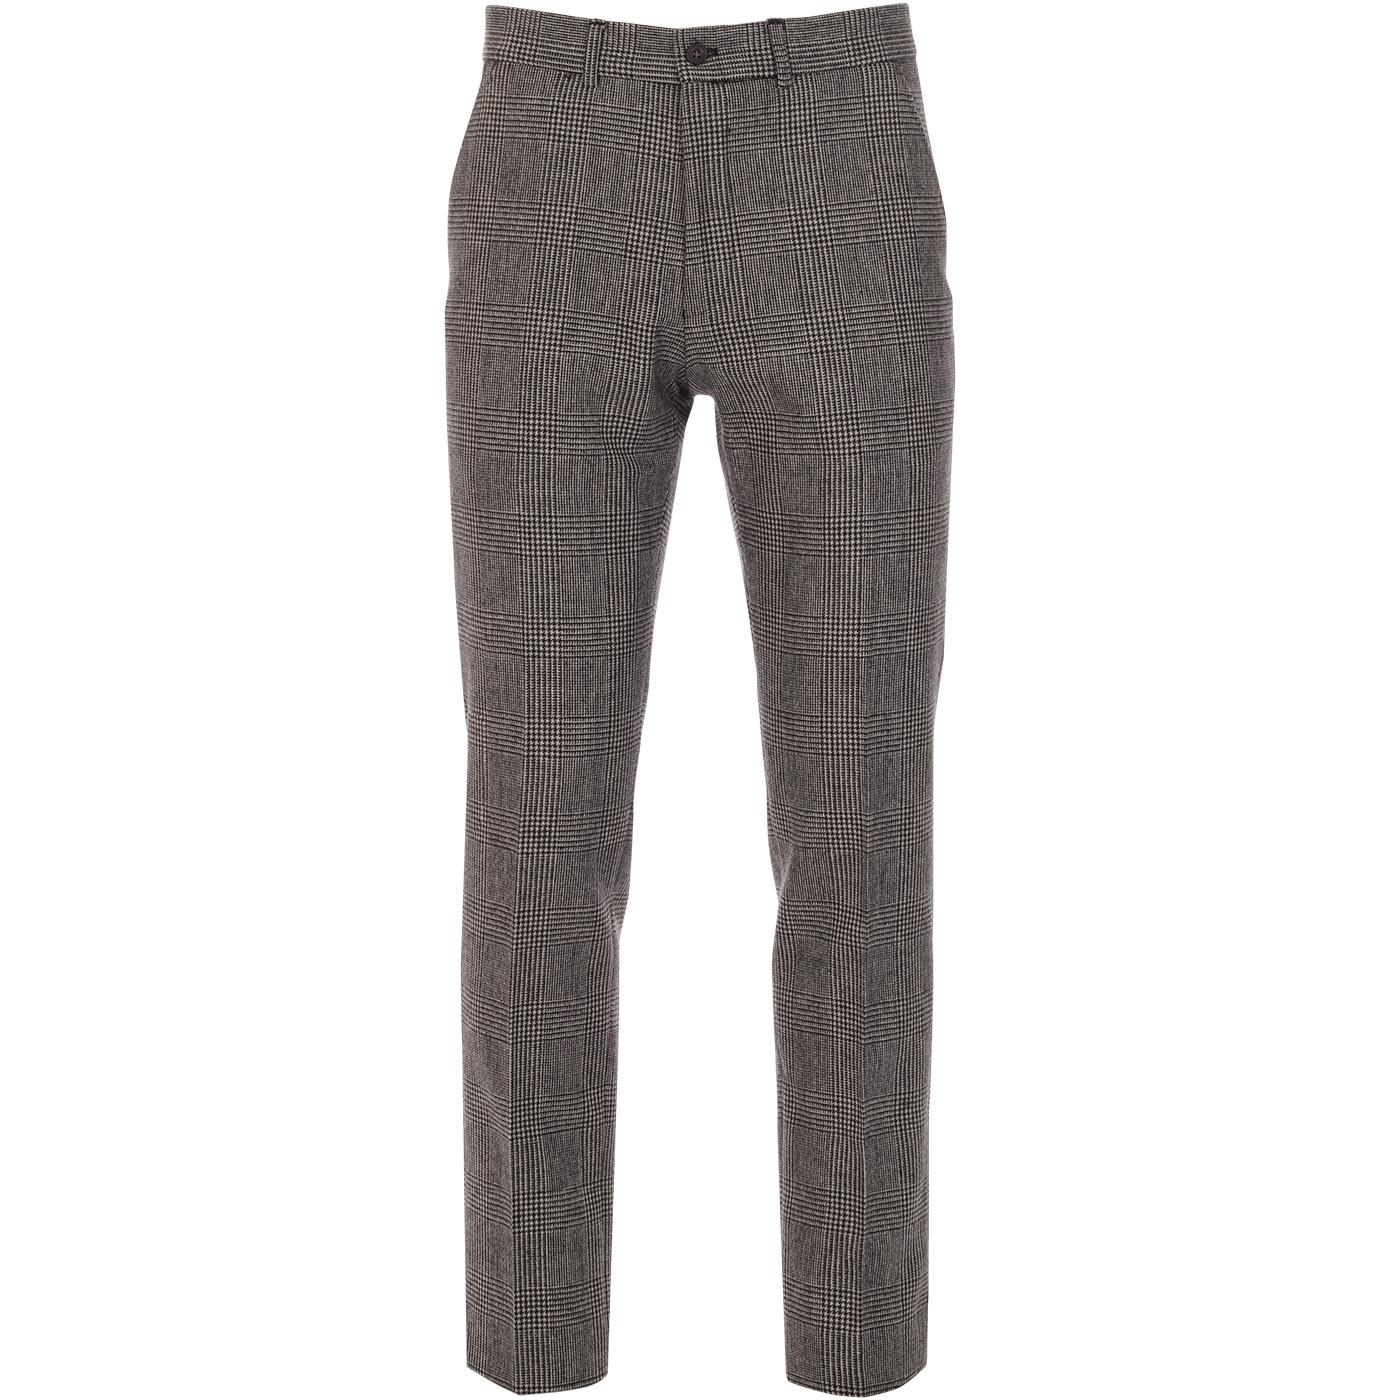 GIBSON LONDON Mod Prince of Wales Check Trousers